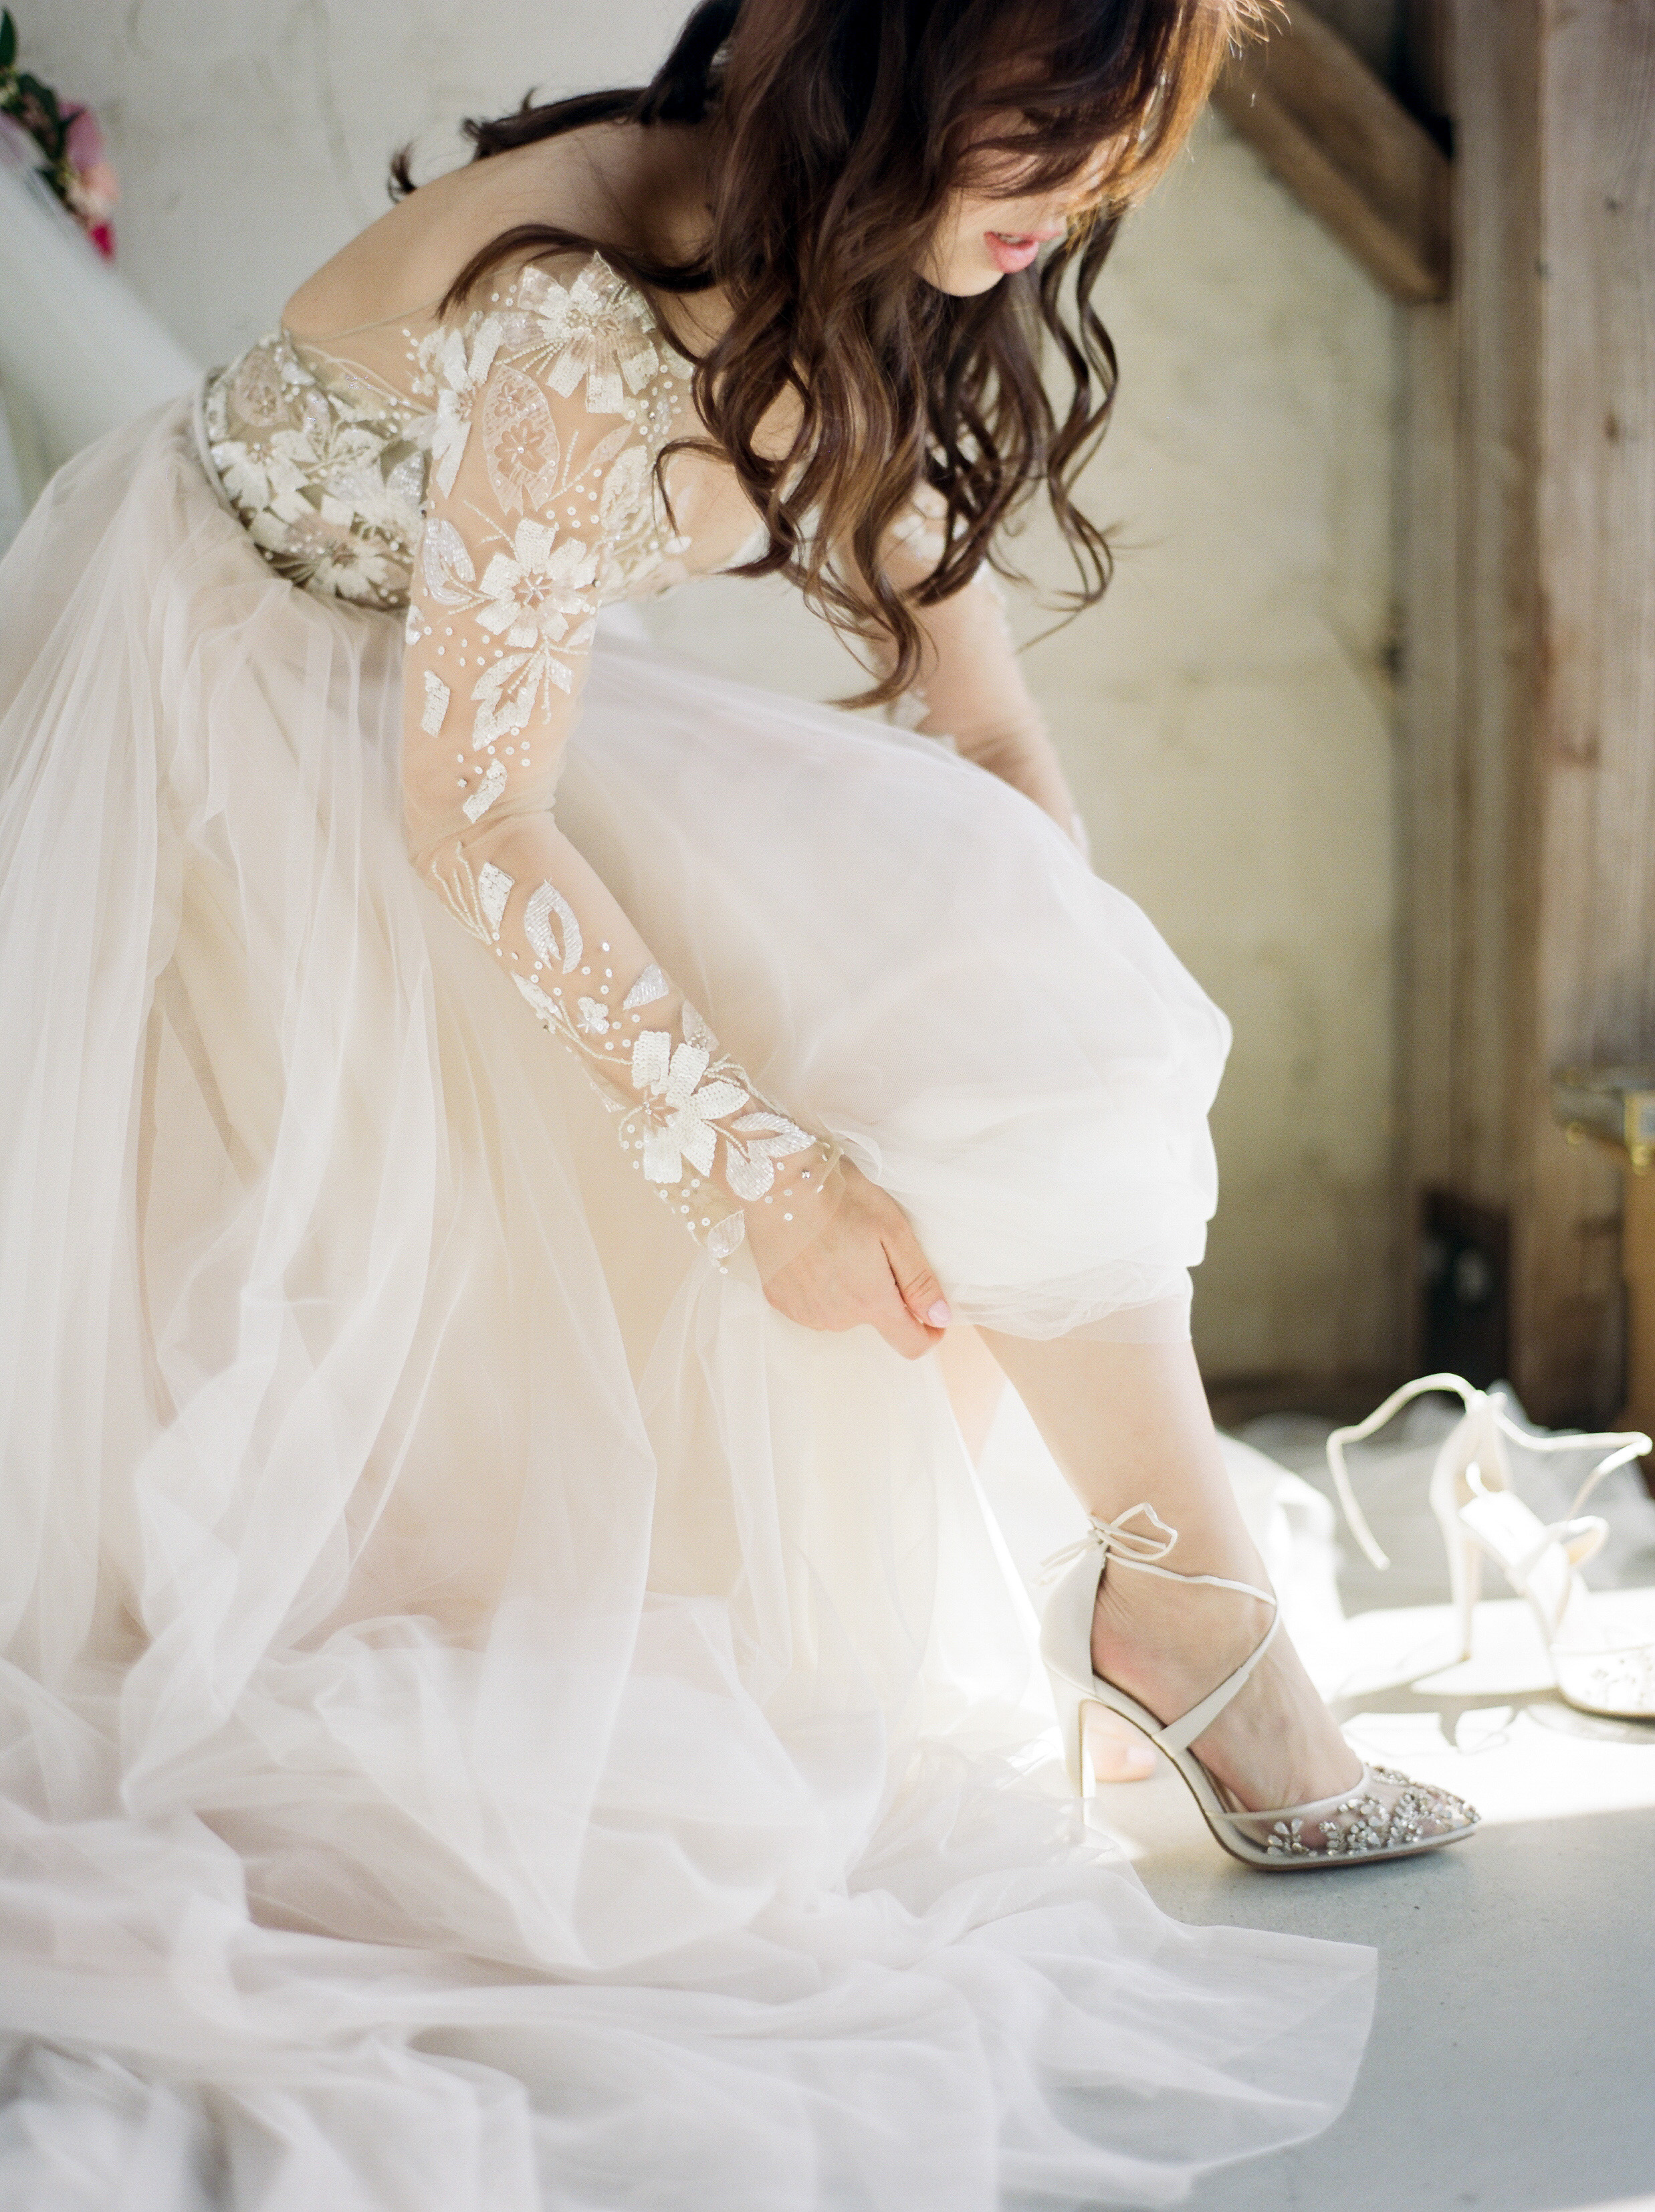 Venue: Chandelier Grove, Planning: Two Be Wed, Styling: Dana Fernandez, Gown: Hayley Paige, MUAH: Hey Lovely Makeup